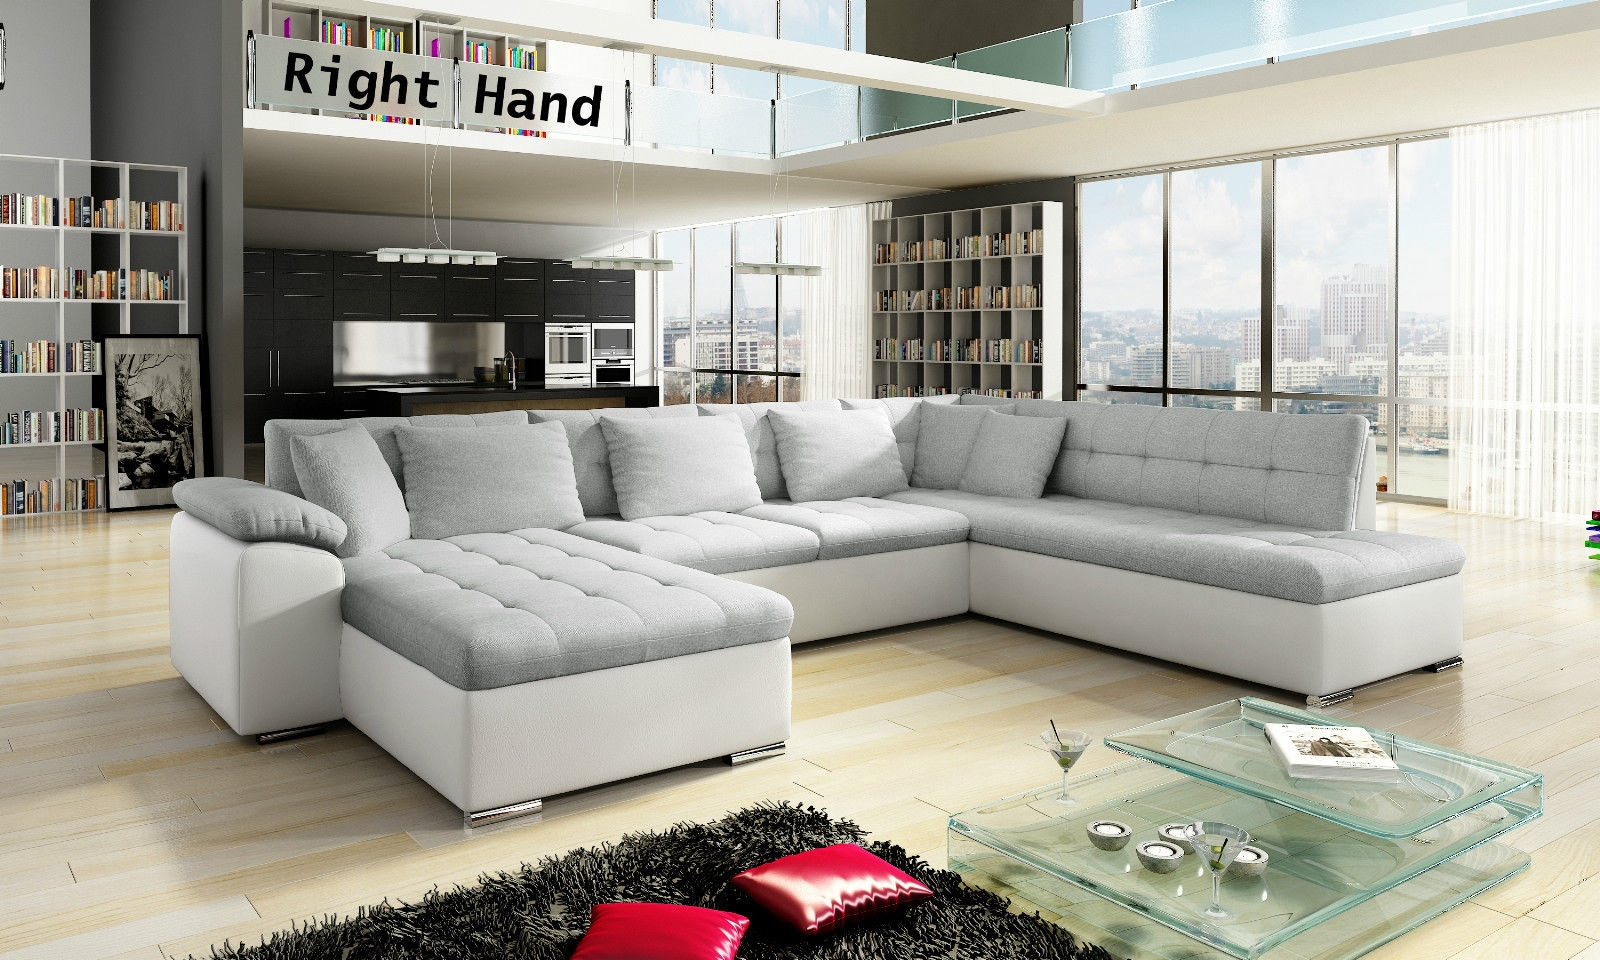 57 Sofa Bed White White Sofa Ligne Roset Sofa Bed Living Rooms Regarding Fabric Corner Sofa Bed (Image 3 of 15)